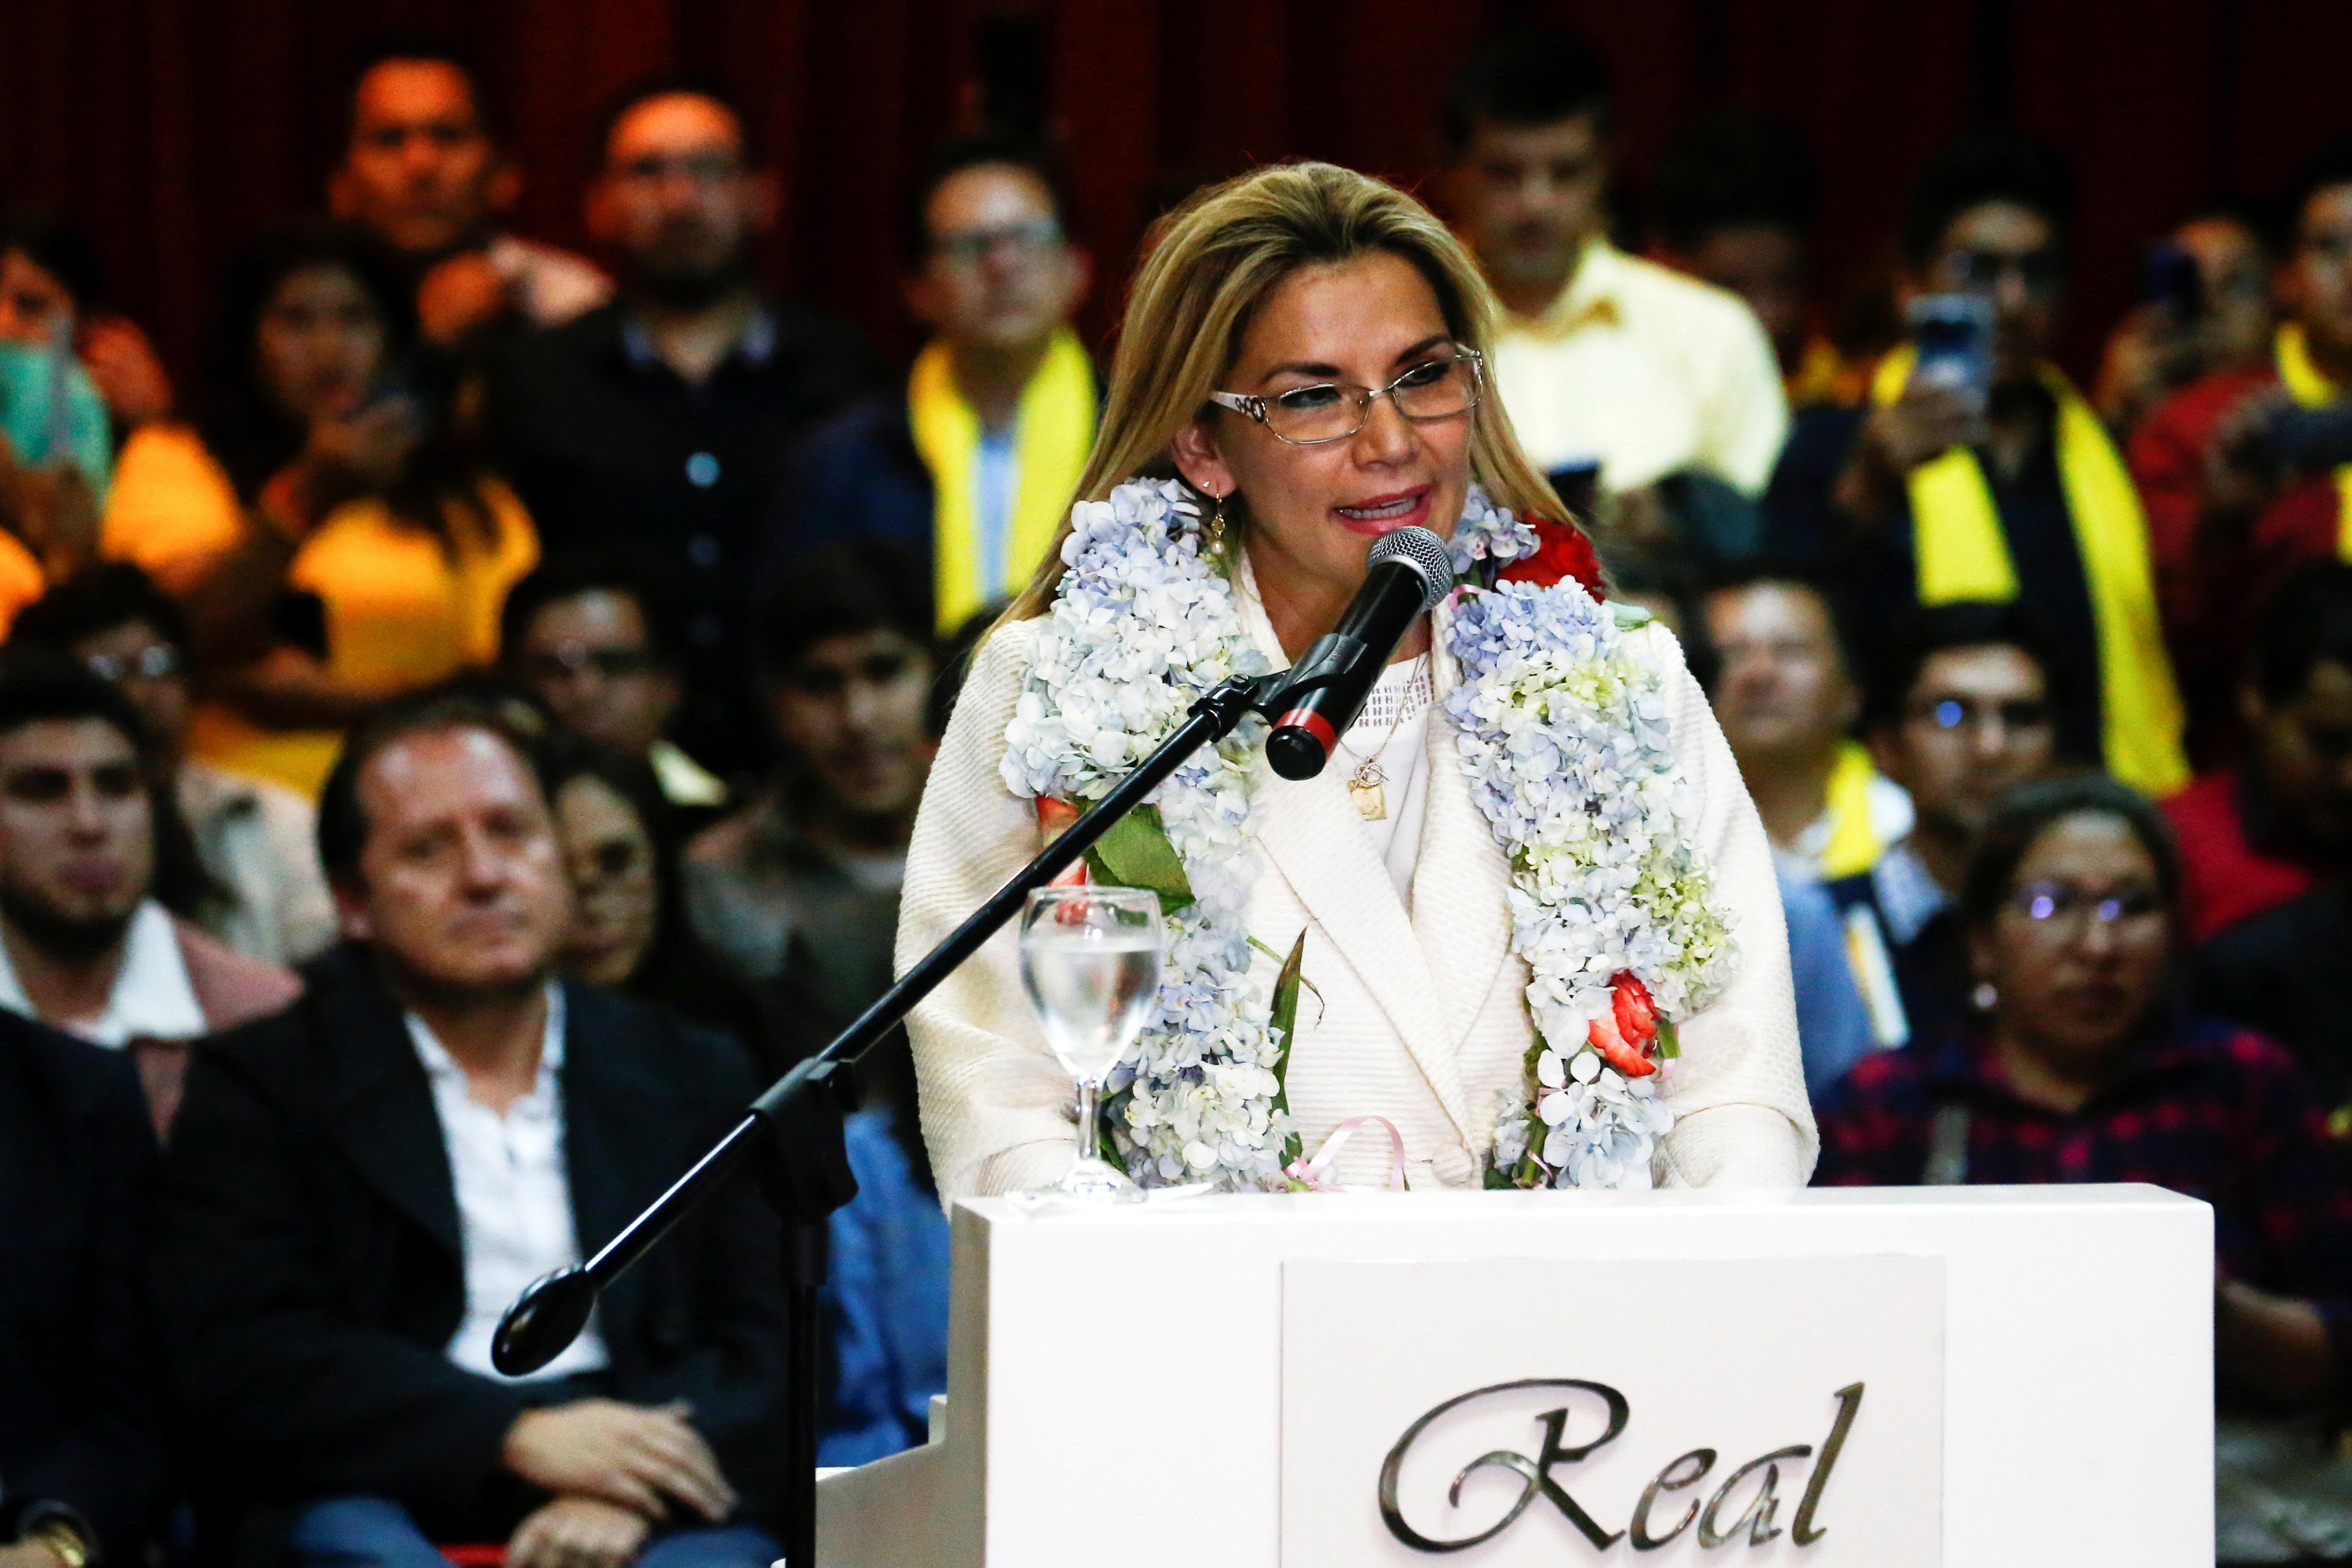 Bolivia's interim President Anez shakes up election race with plan...